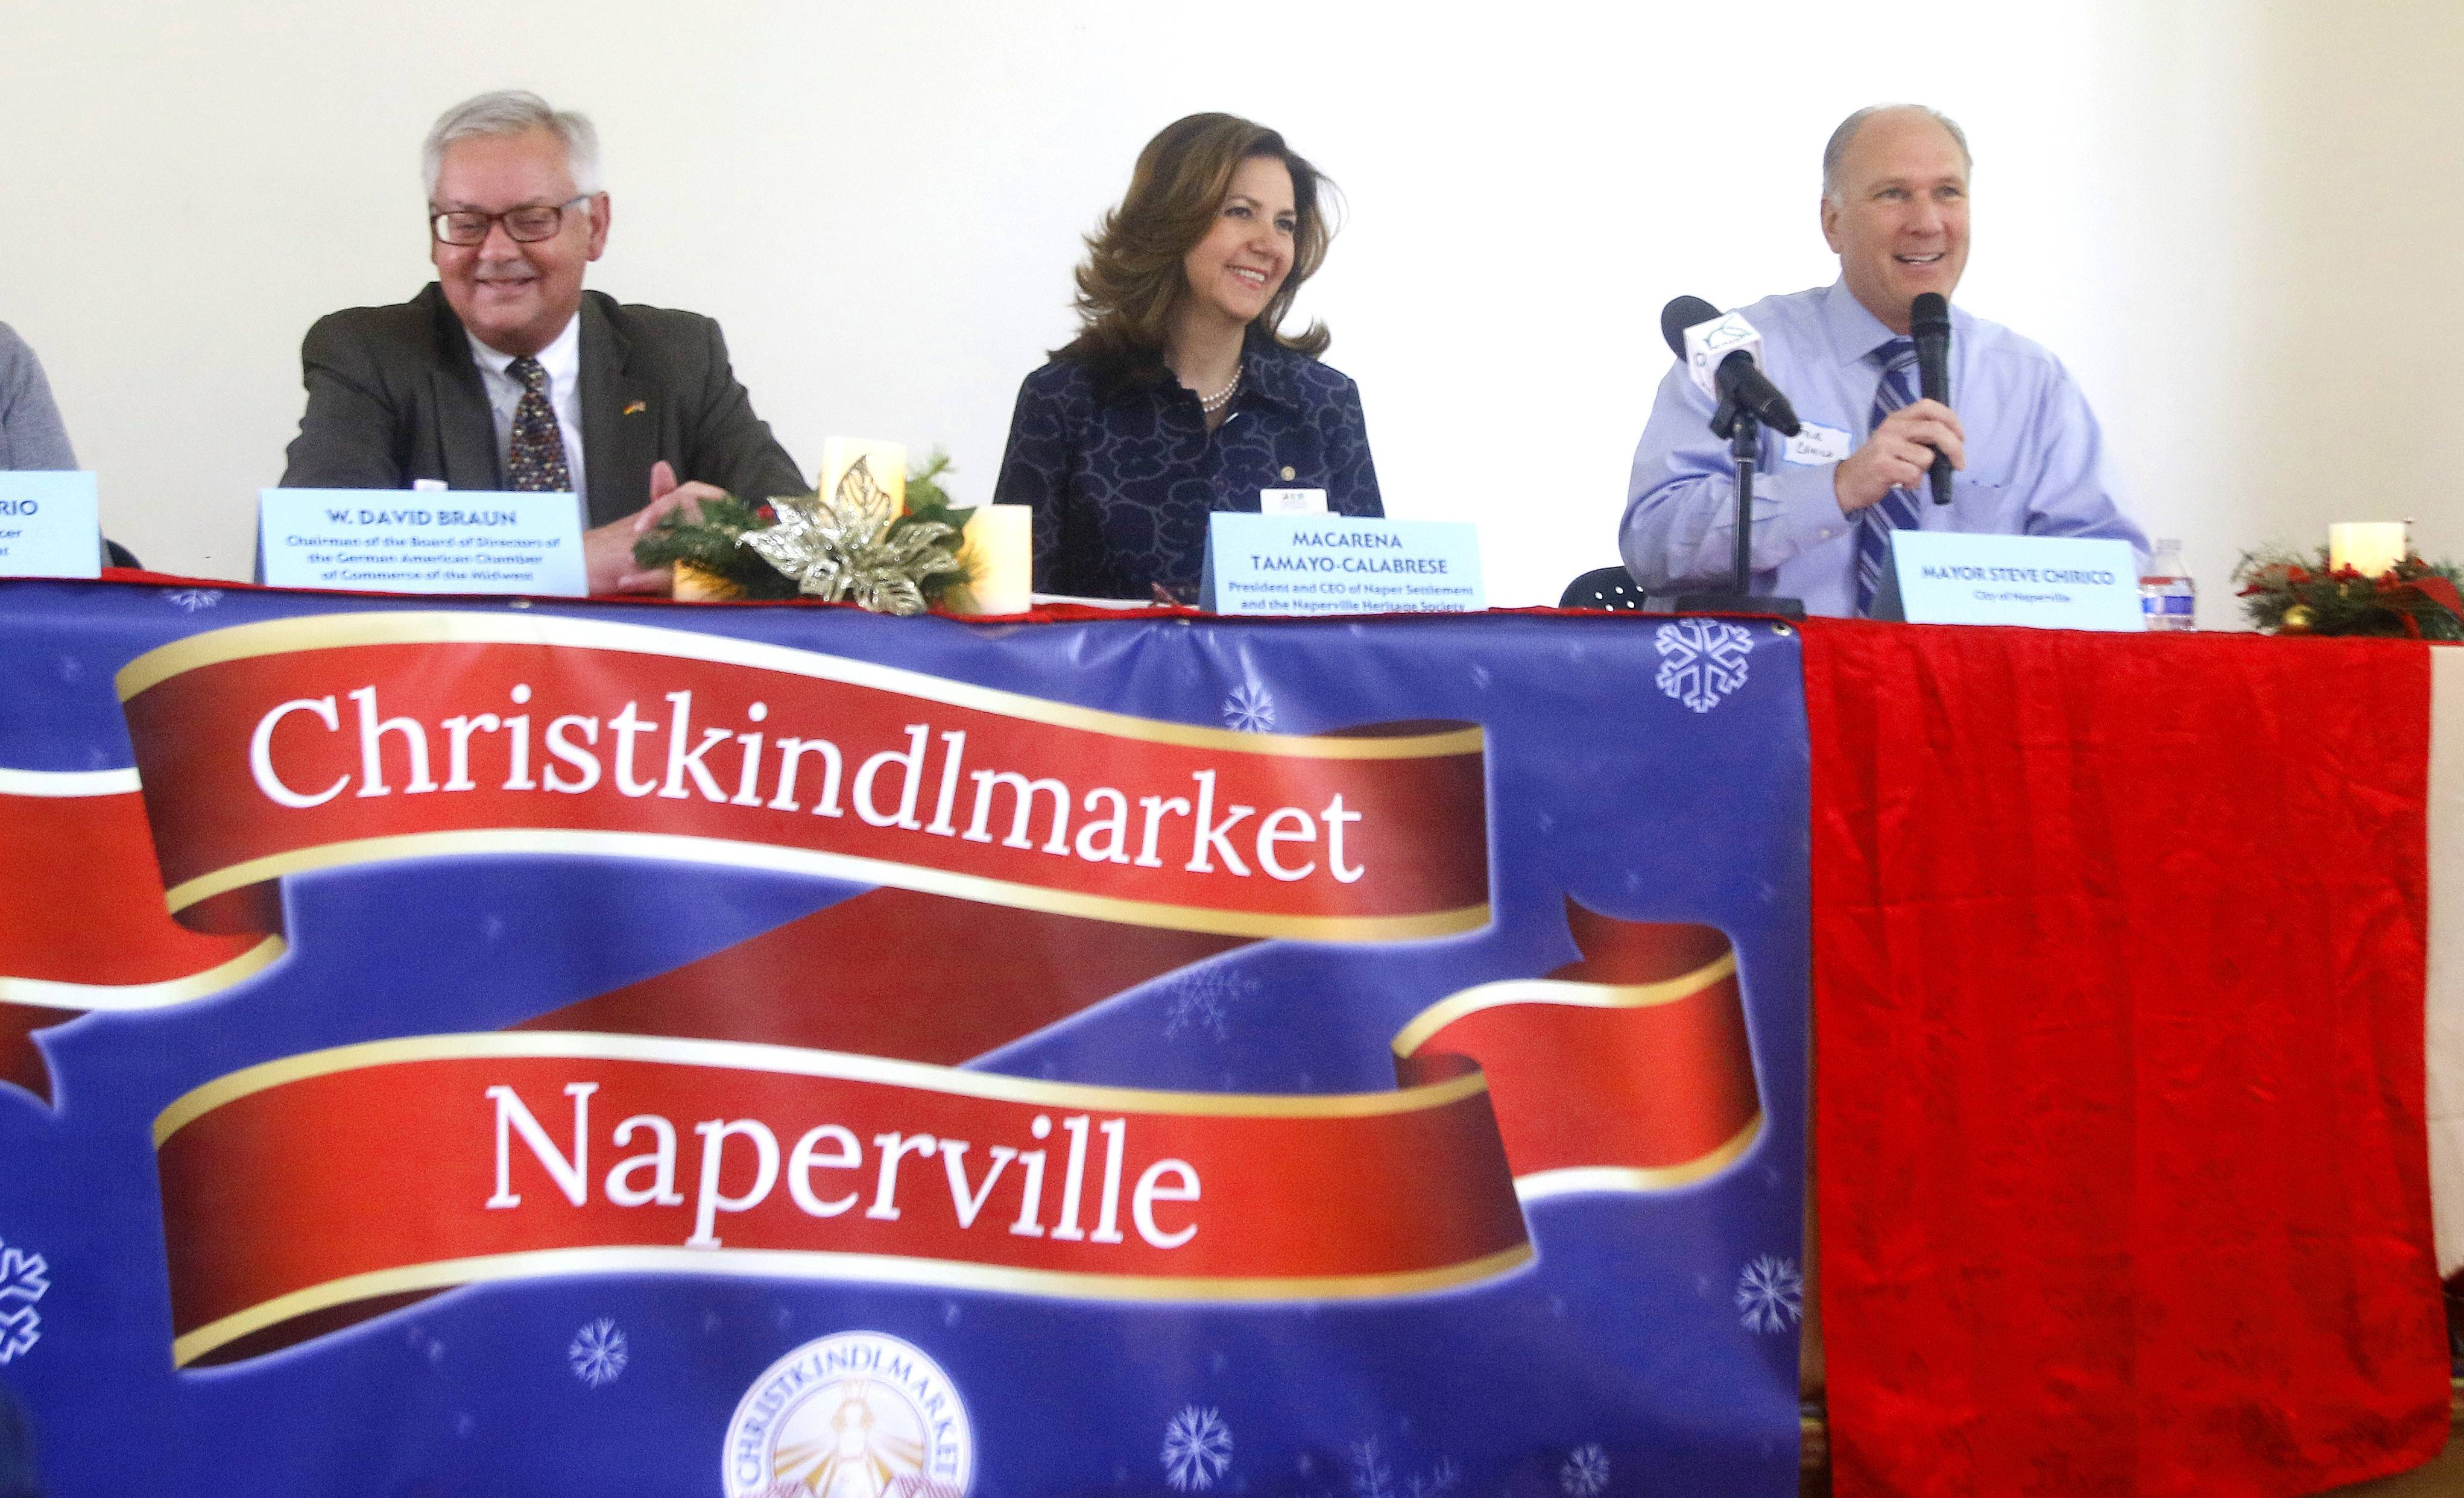 Christkindlmarket coming to Naper Settlement